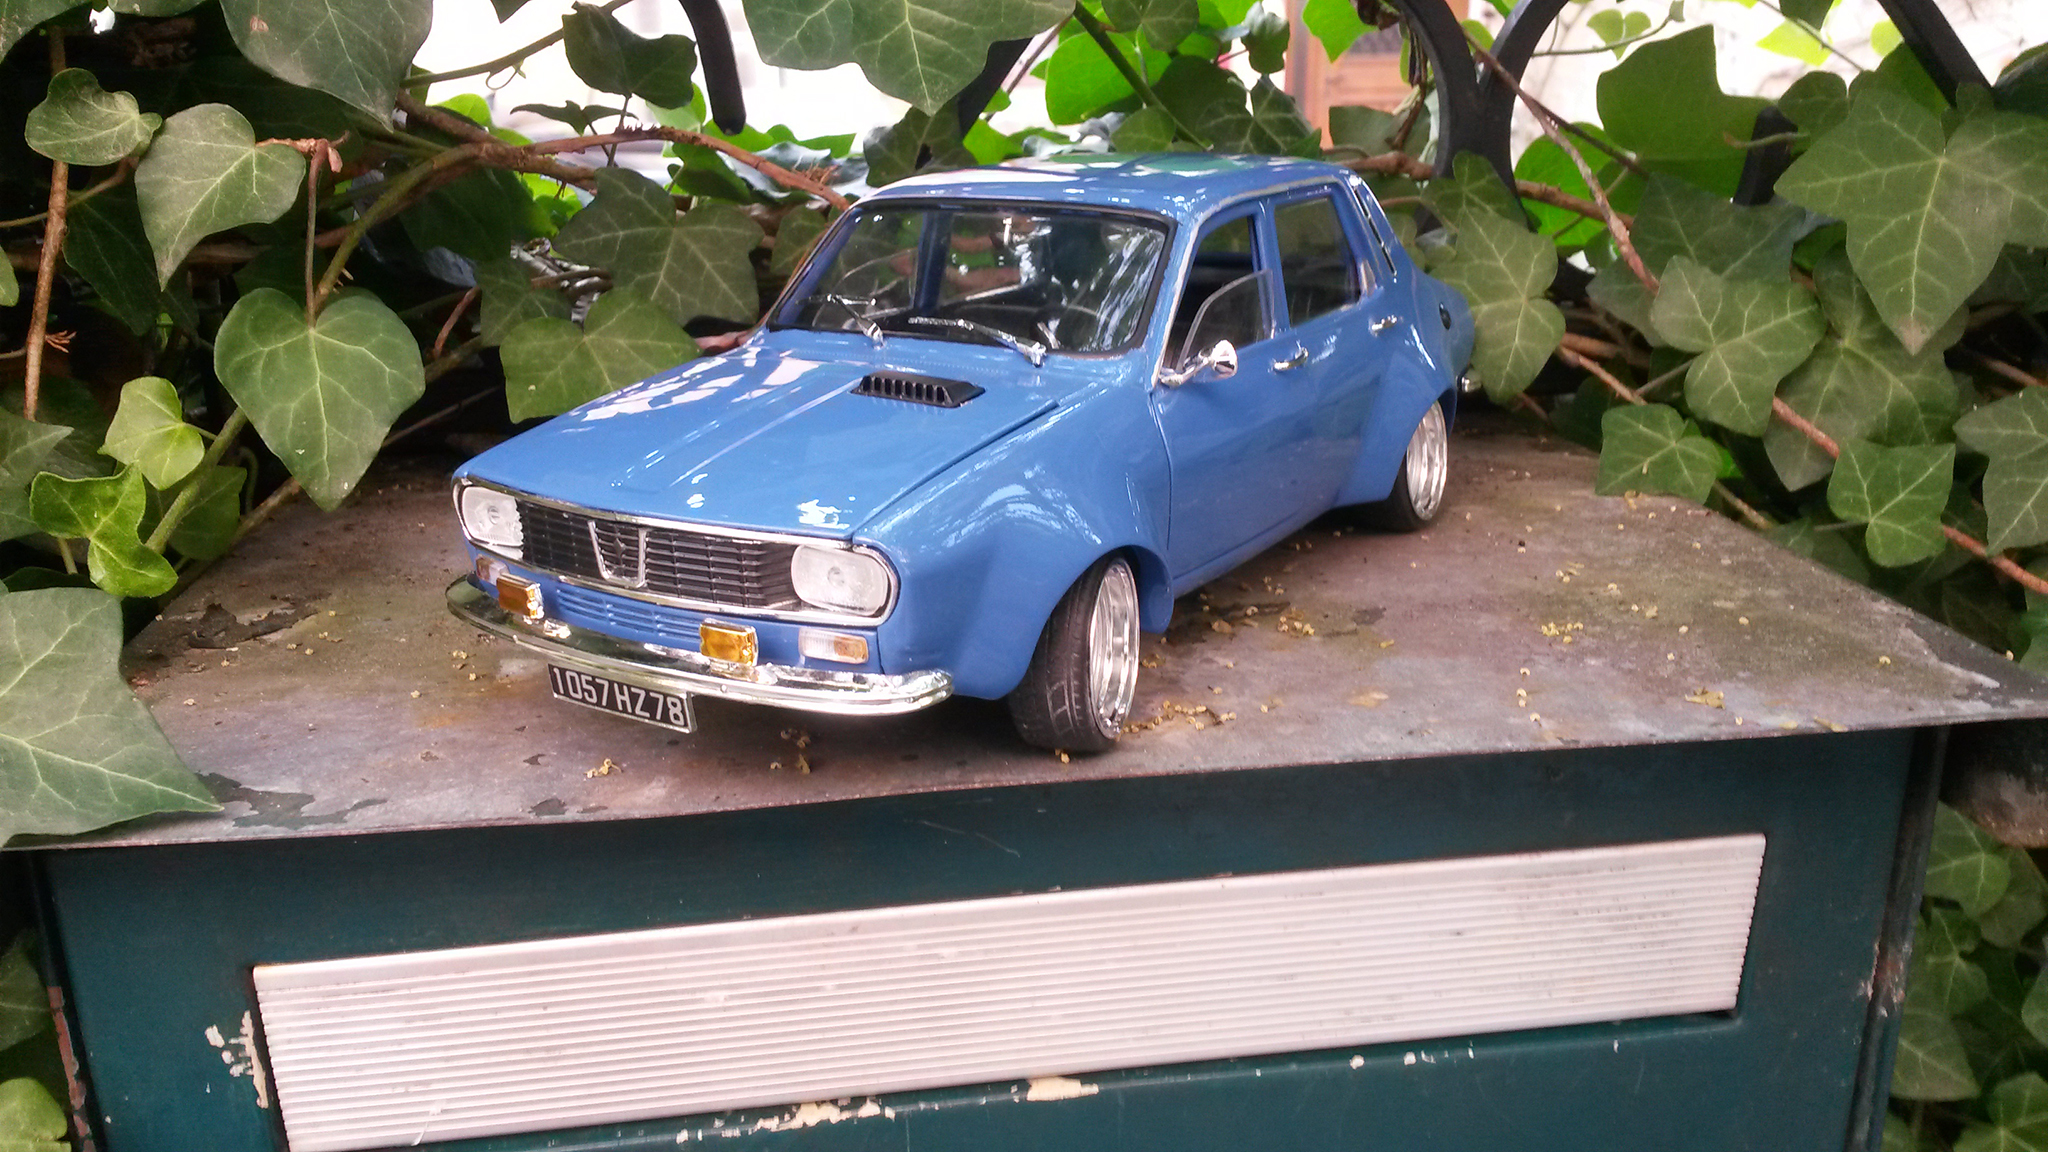 Renault 12 Gordini 1/18 Solido kit large groupe A tuning modellautos